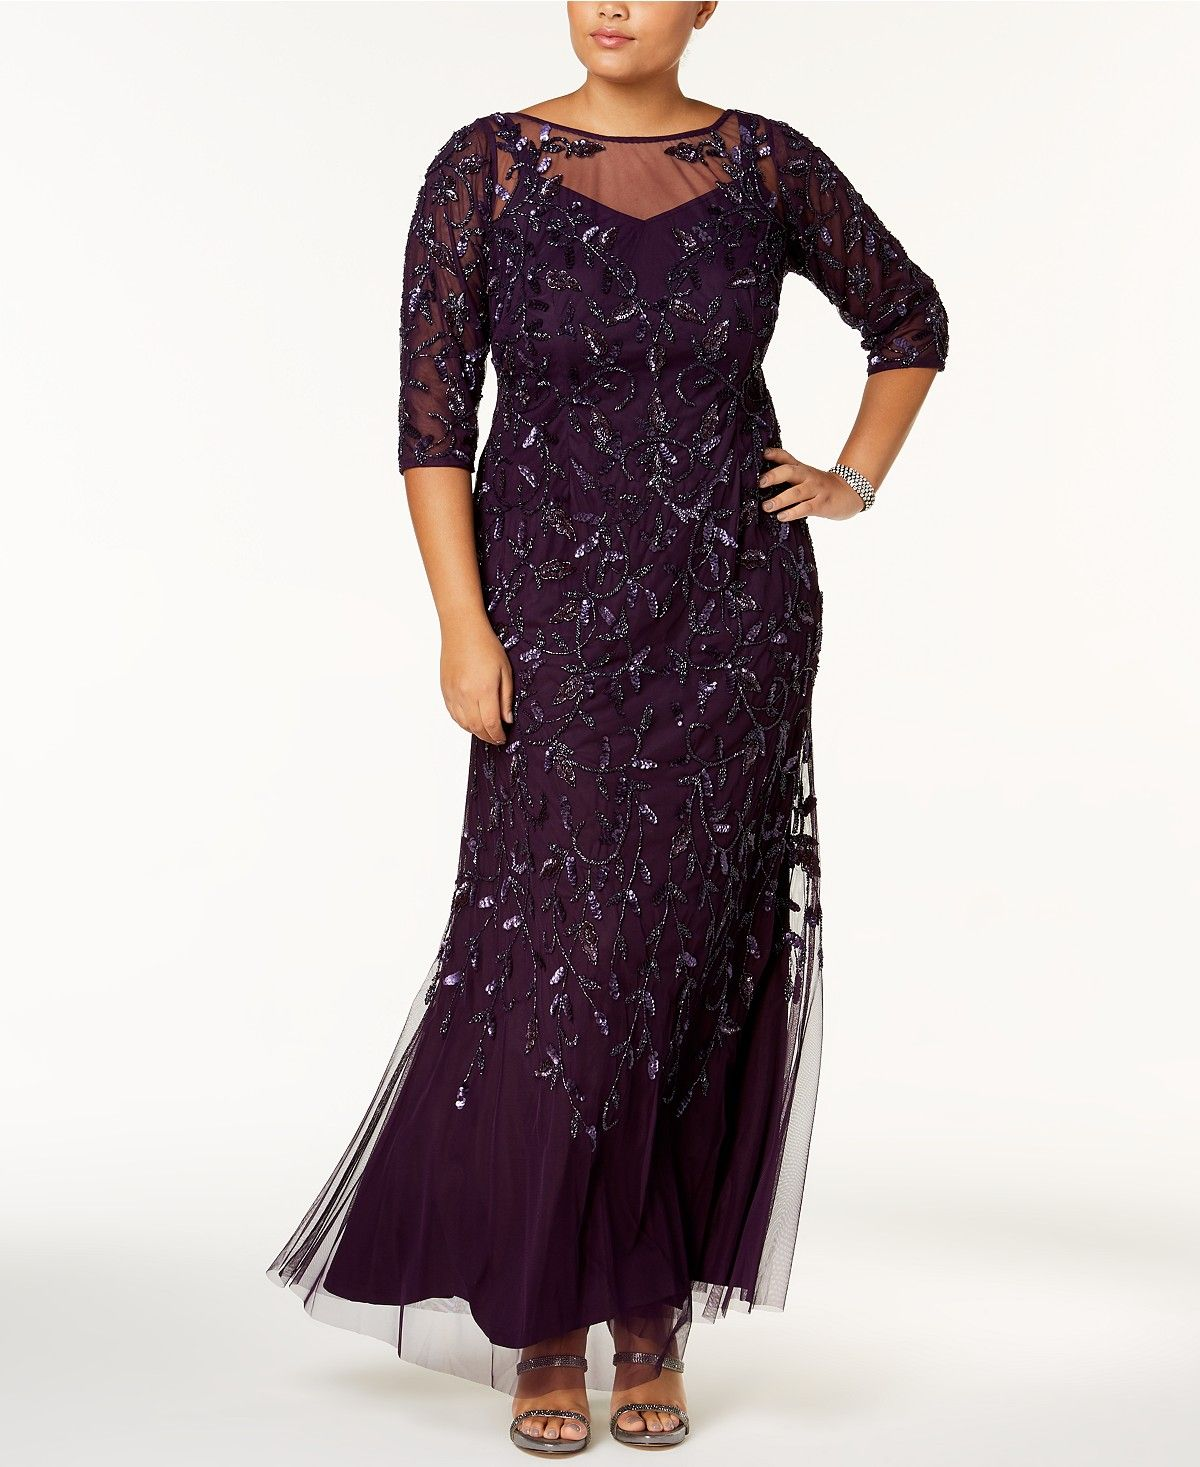 Adrianna papell plus size beaded mesh gown dresses plus sizes